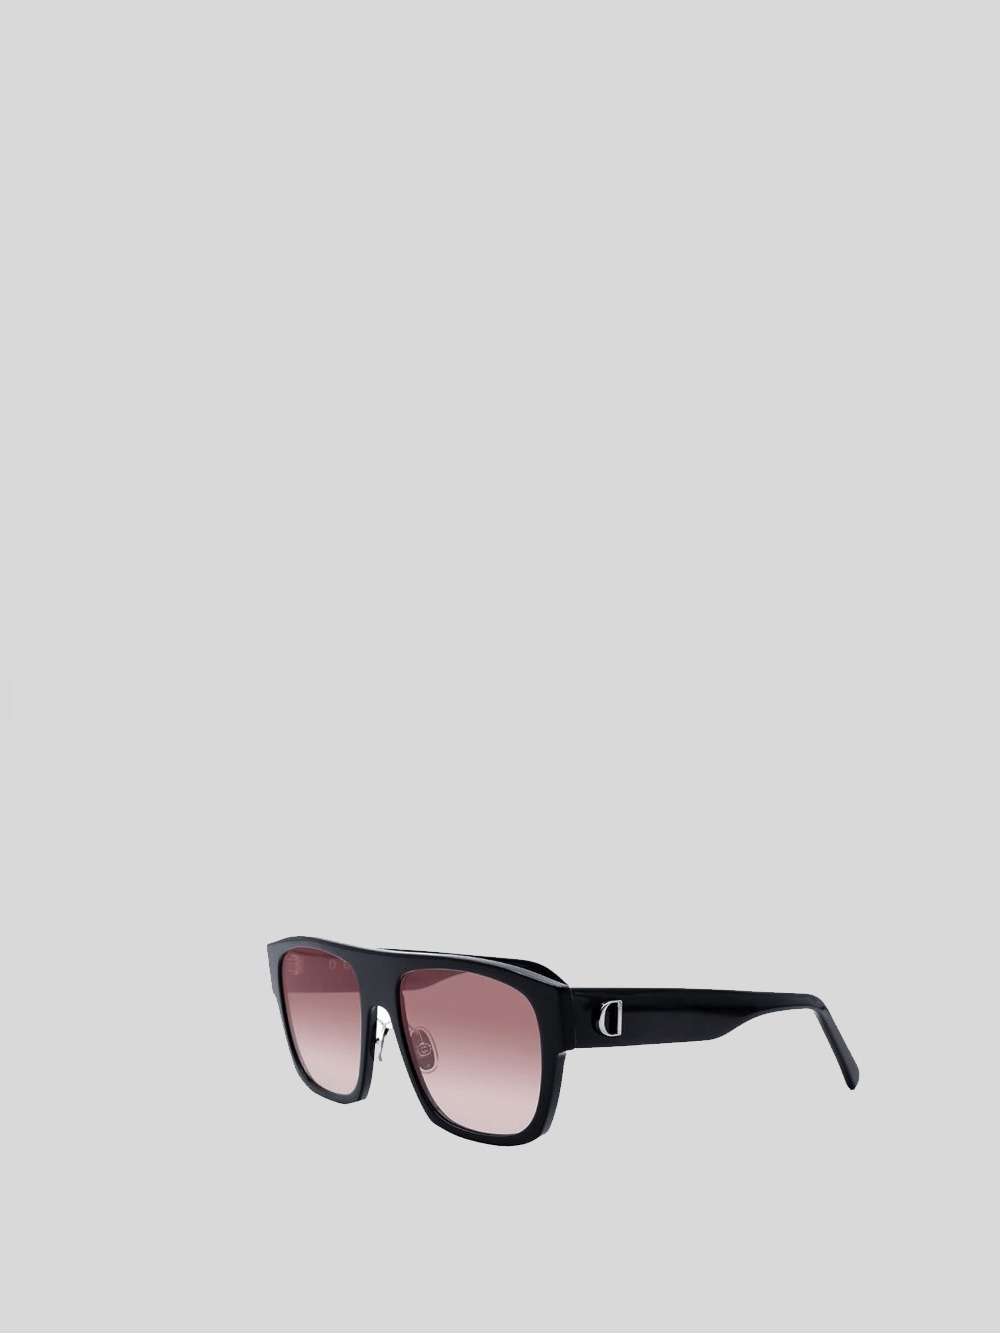 Dundas x L.G.R. Black 01 Pink Photocromic 56' Sunglasses L.G.R.